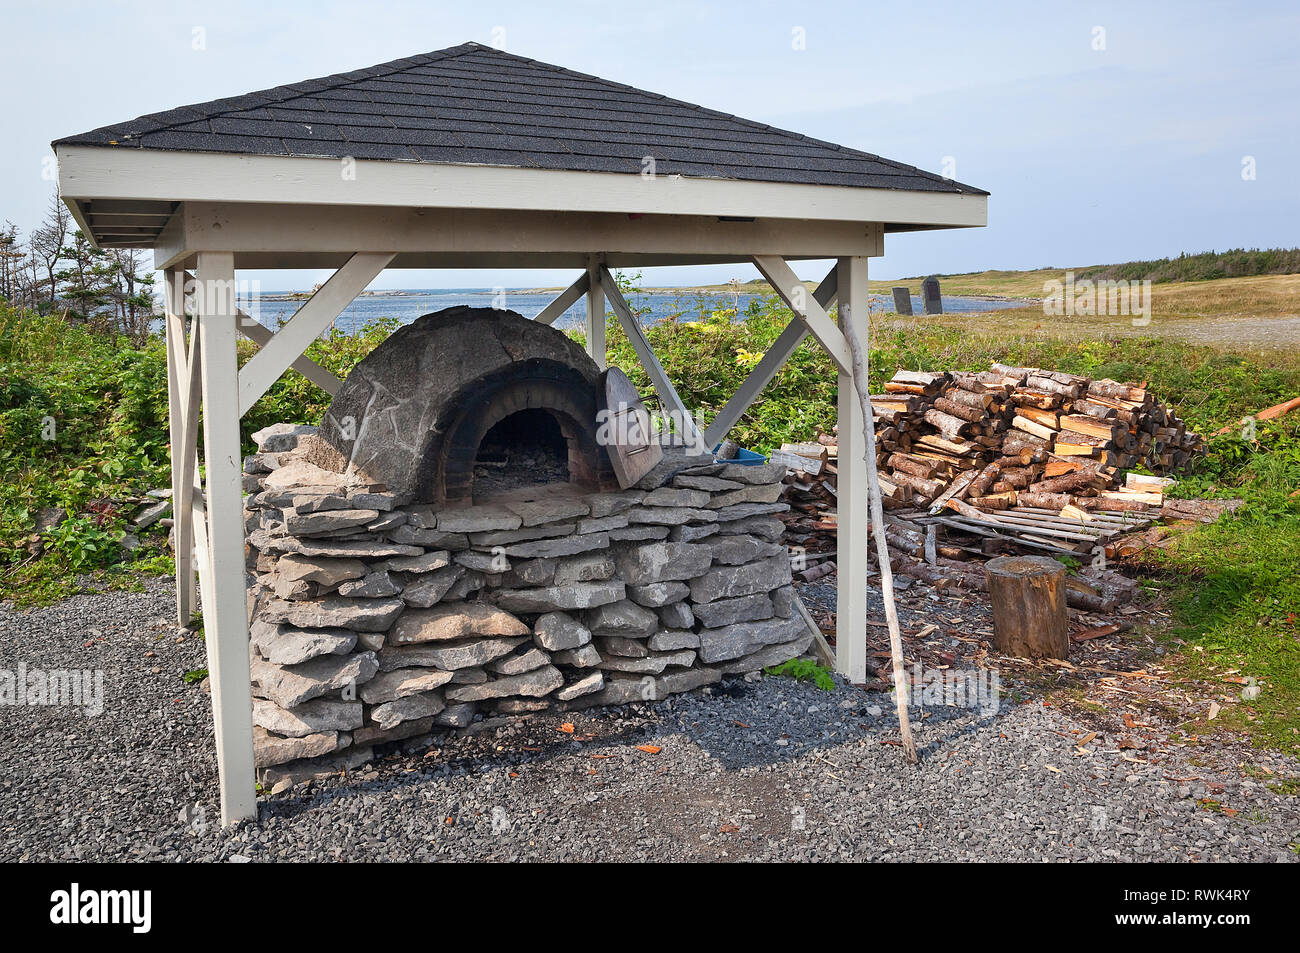 Outdoor, wood-fired, brick-and-stone bread oven on a stone